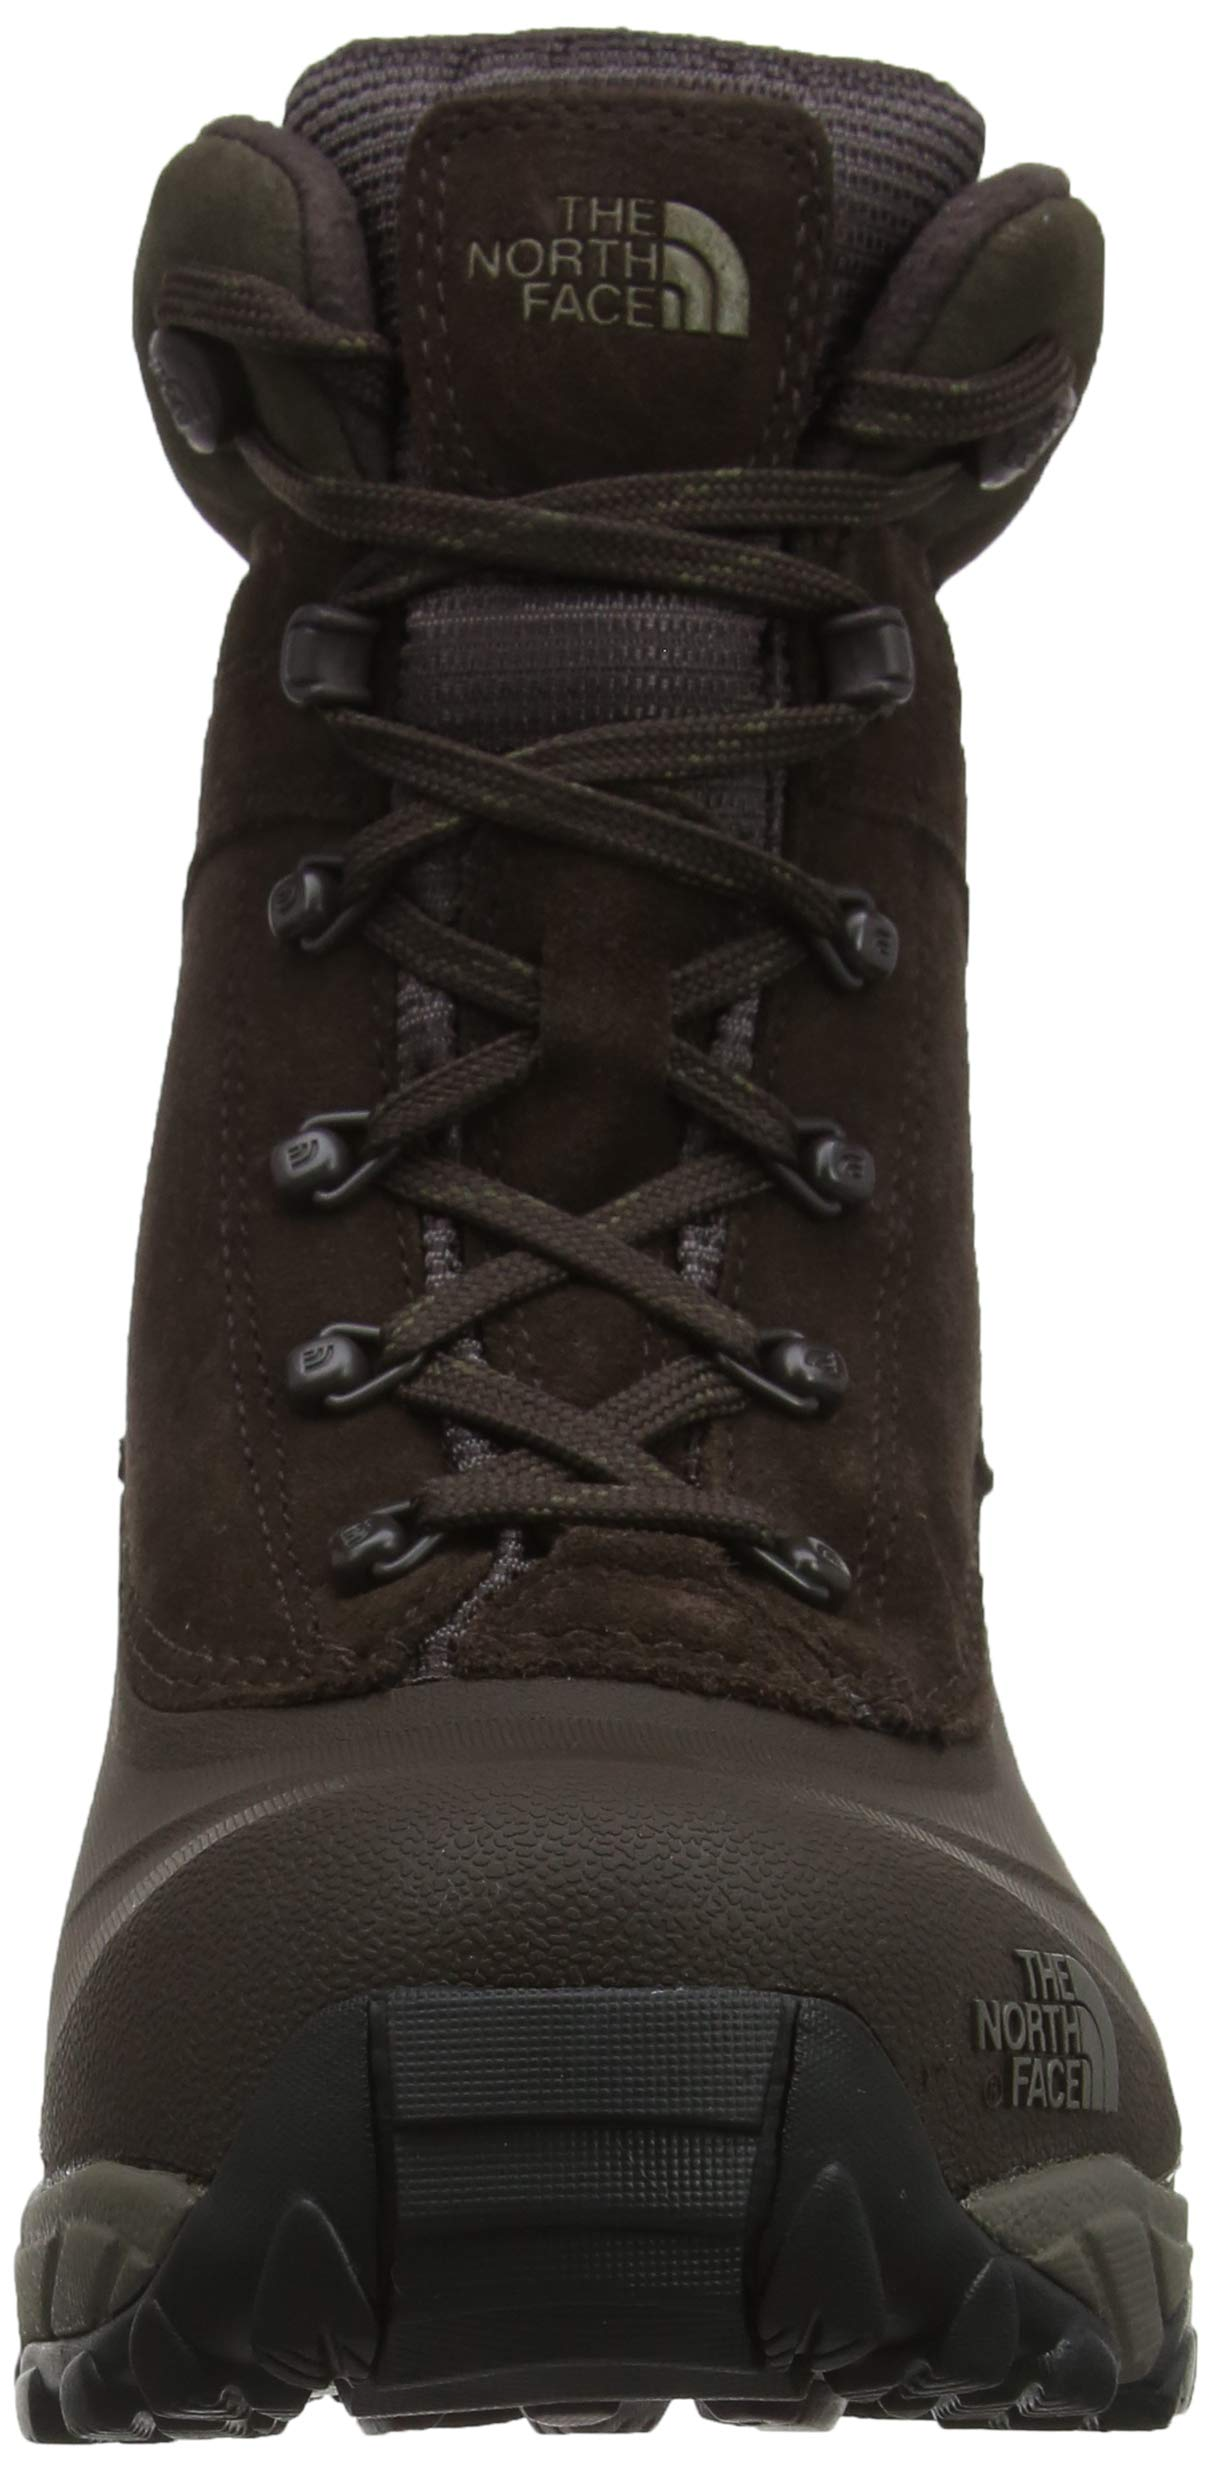 71uswM6nwQL - THE NORTH FACE Men's Chilkat Iii High Rise Hiking Boots